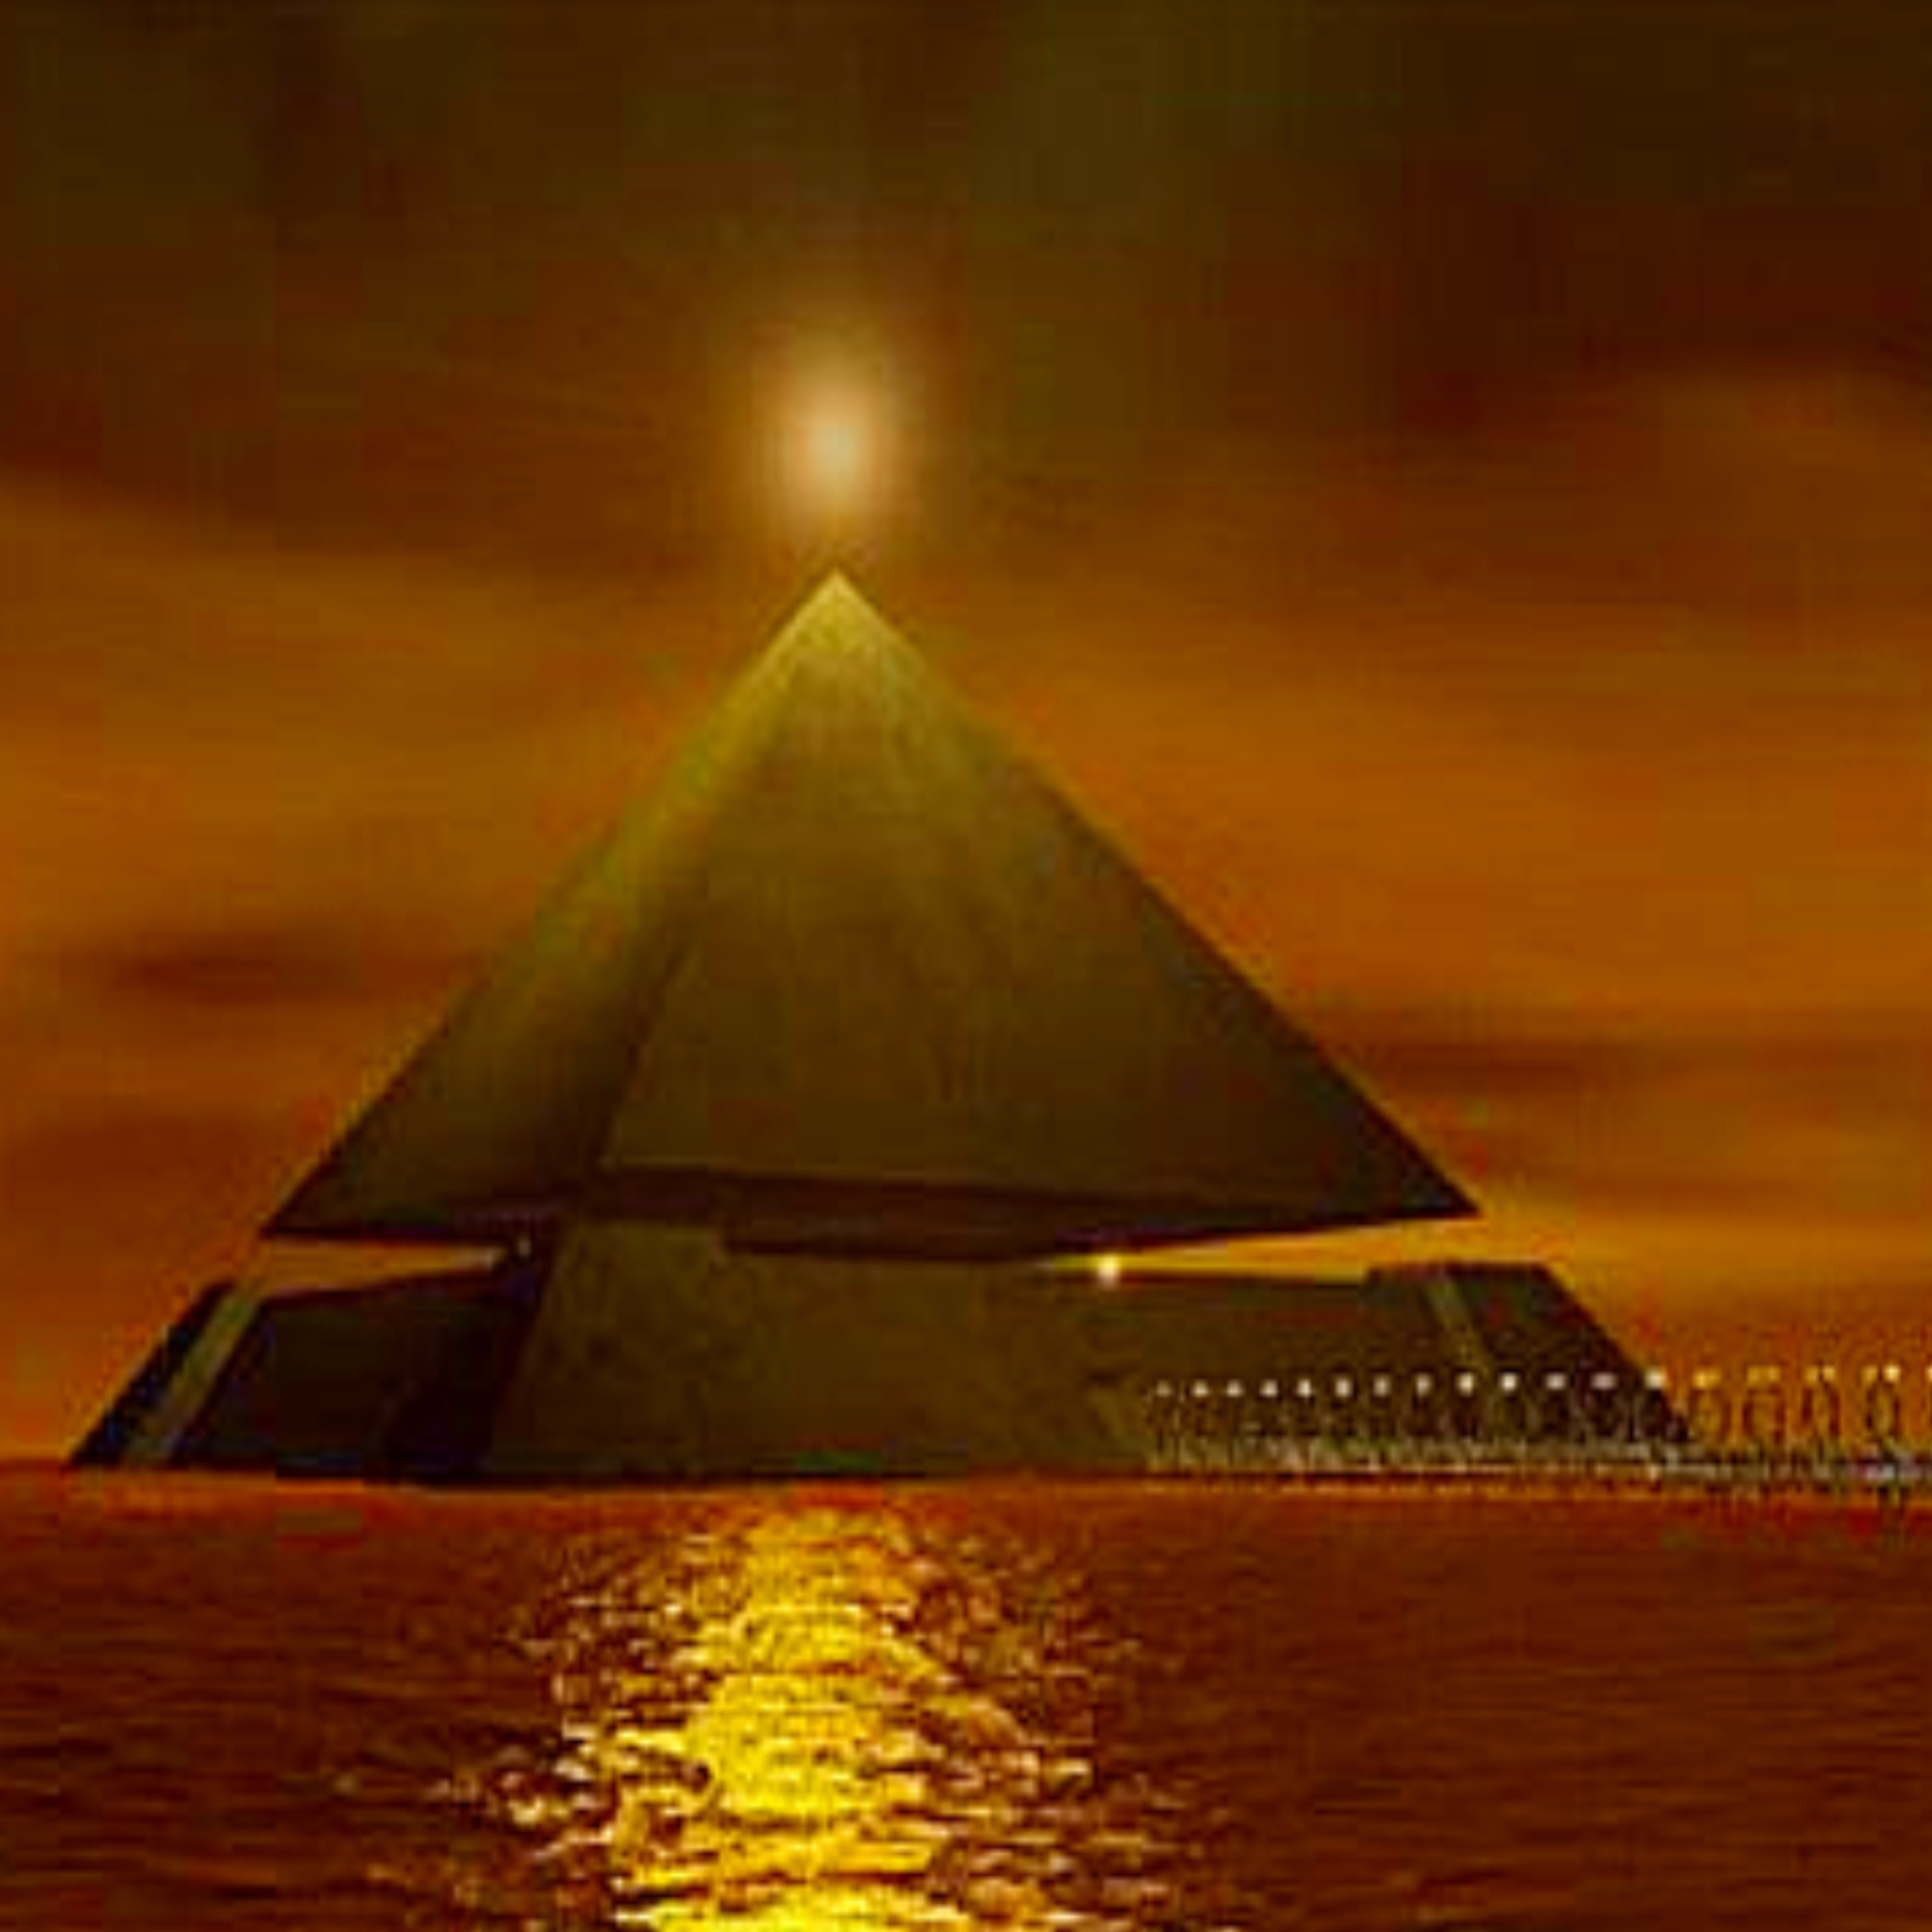 File:The Pyramid of Shinnok.jpg